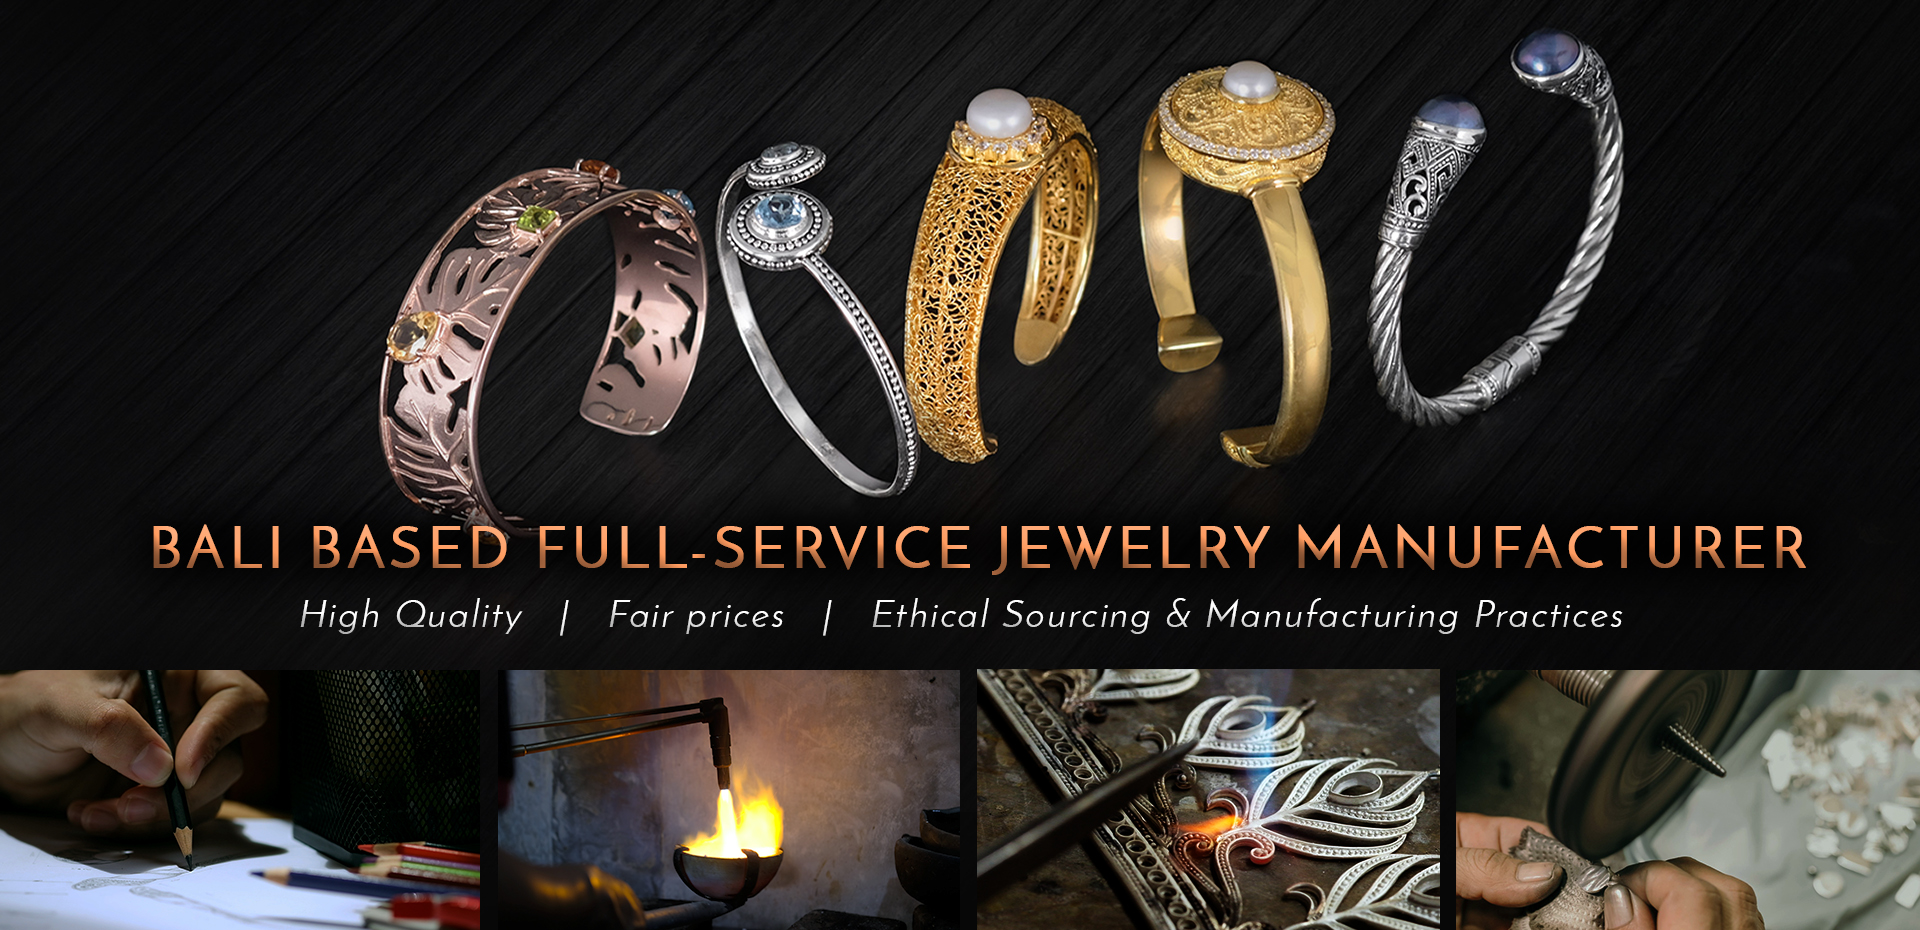 Bali Based Full Service Jewelry Manufacturing